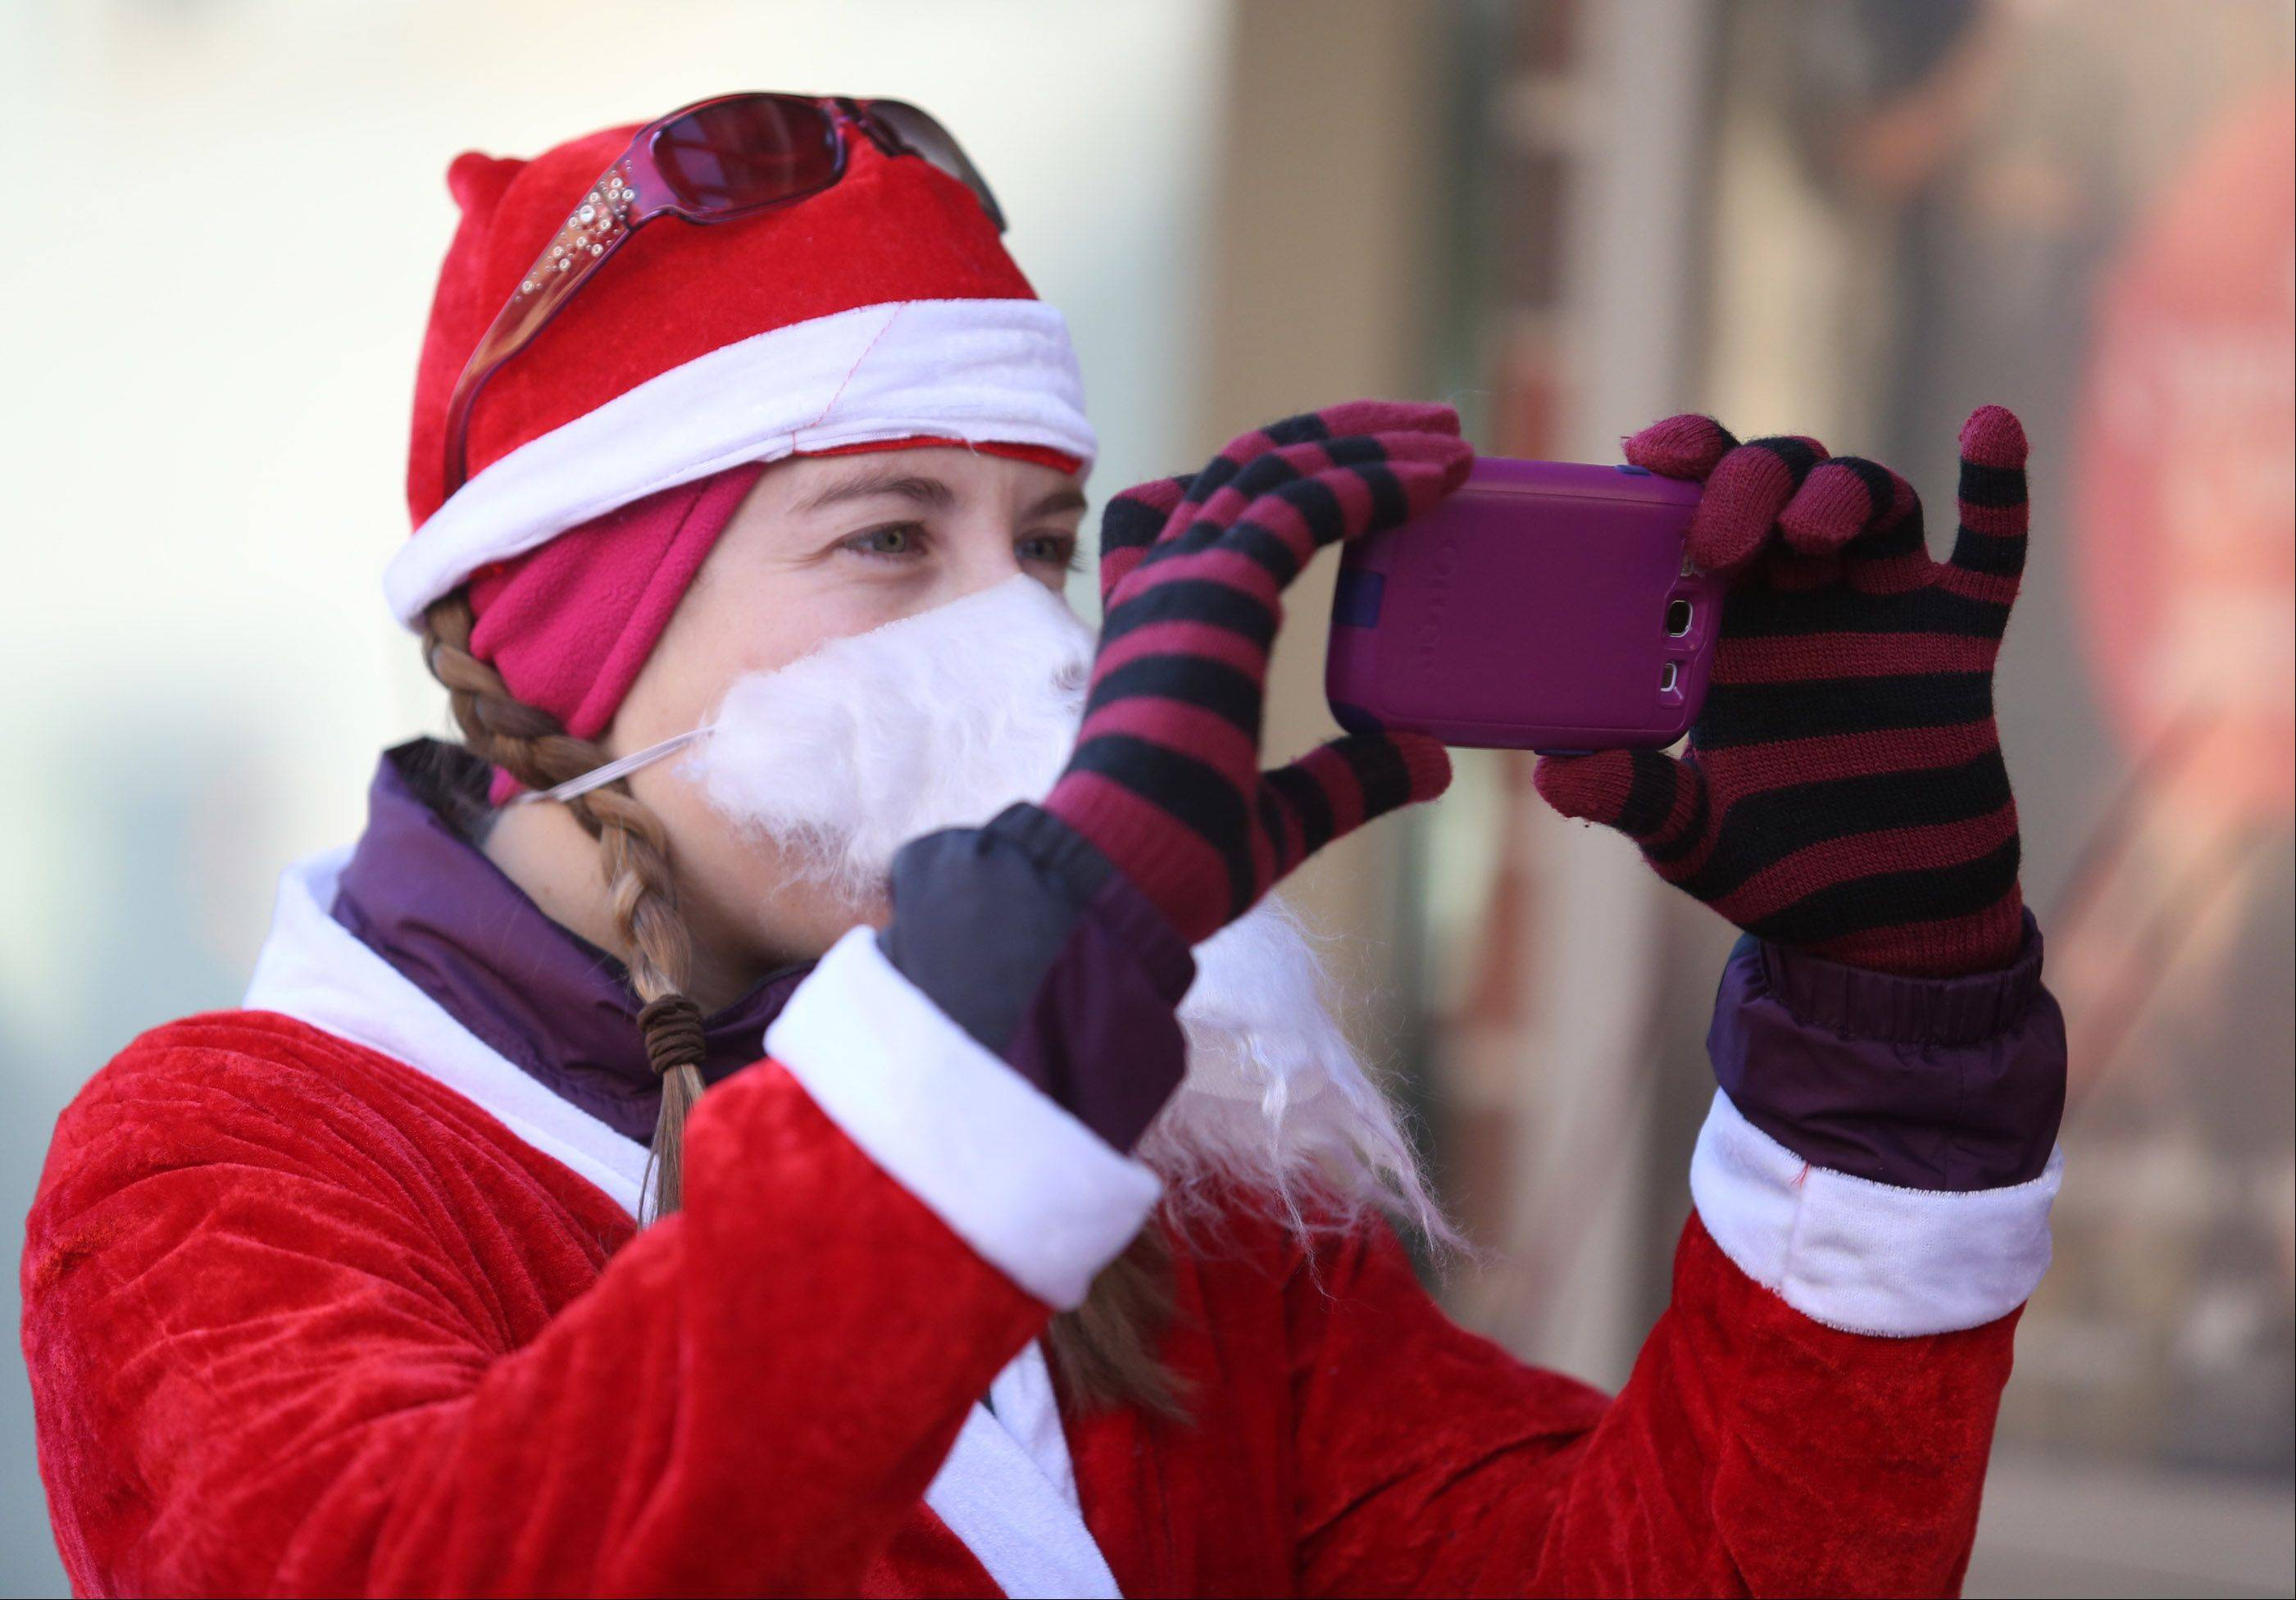 Katie Deswardt of Lake Zurich uses her costume beard to keep warm while taking photos Saturday at the Rotary Santa Run in Arlington Heights.